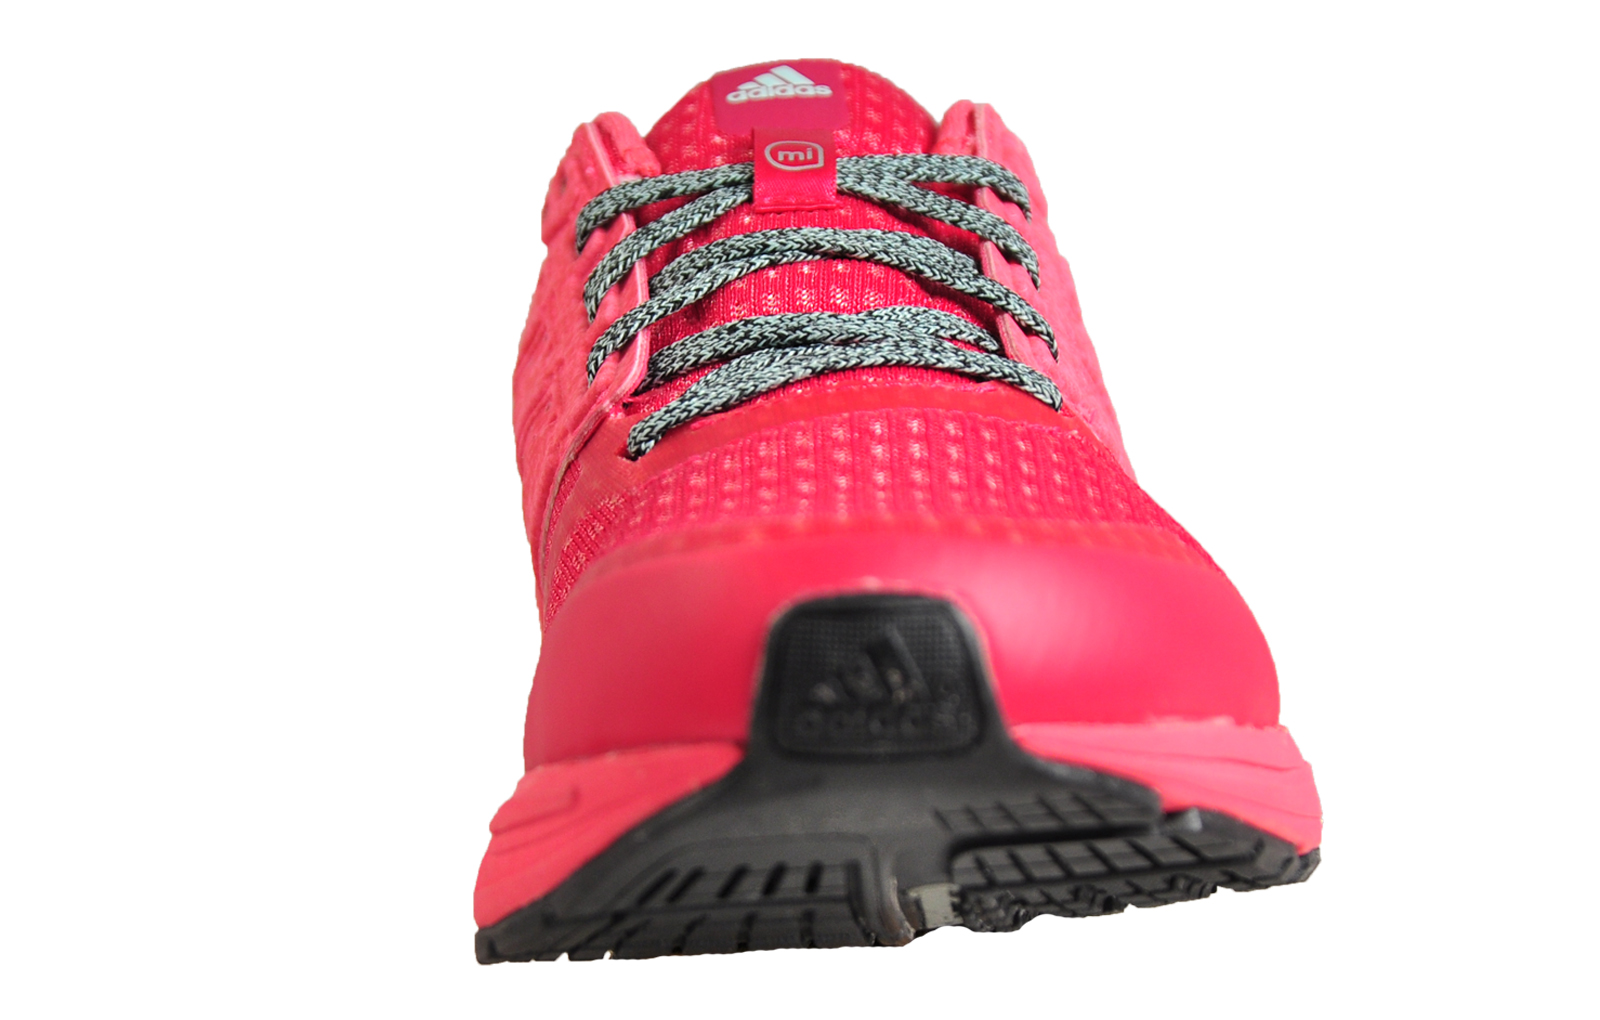 1b4ab2f9b9222 Adidas Supernova Sequence Boost 8 Women s Running Shoes Fitness Gym Trainers